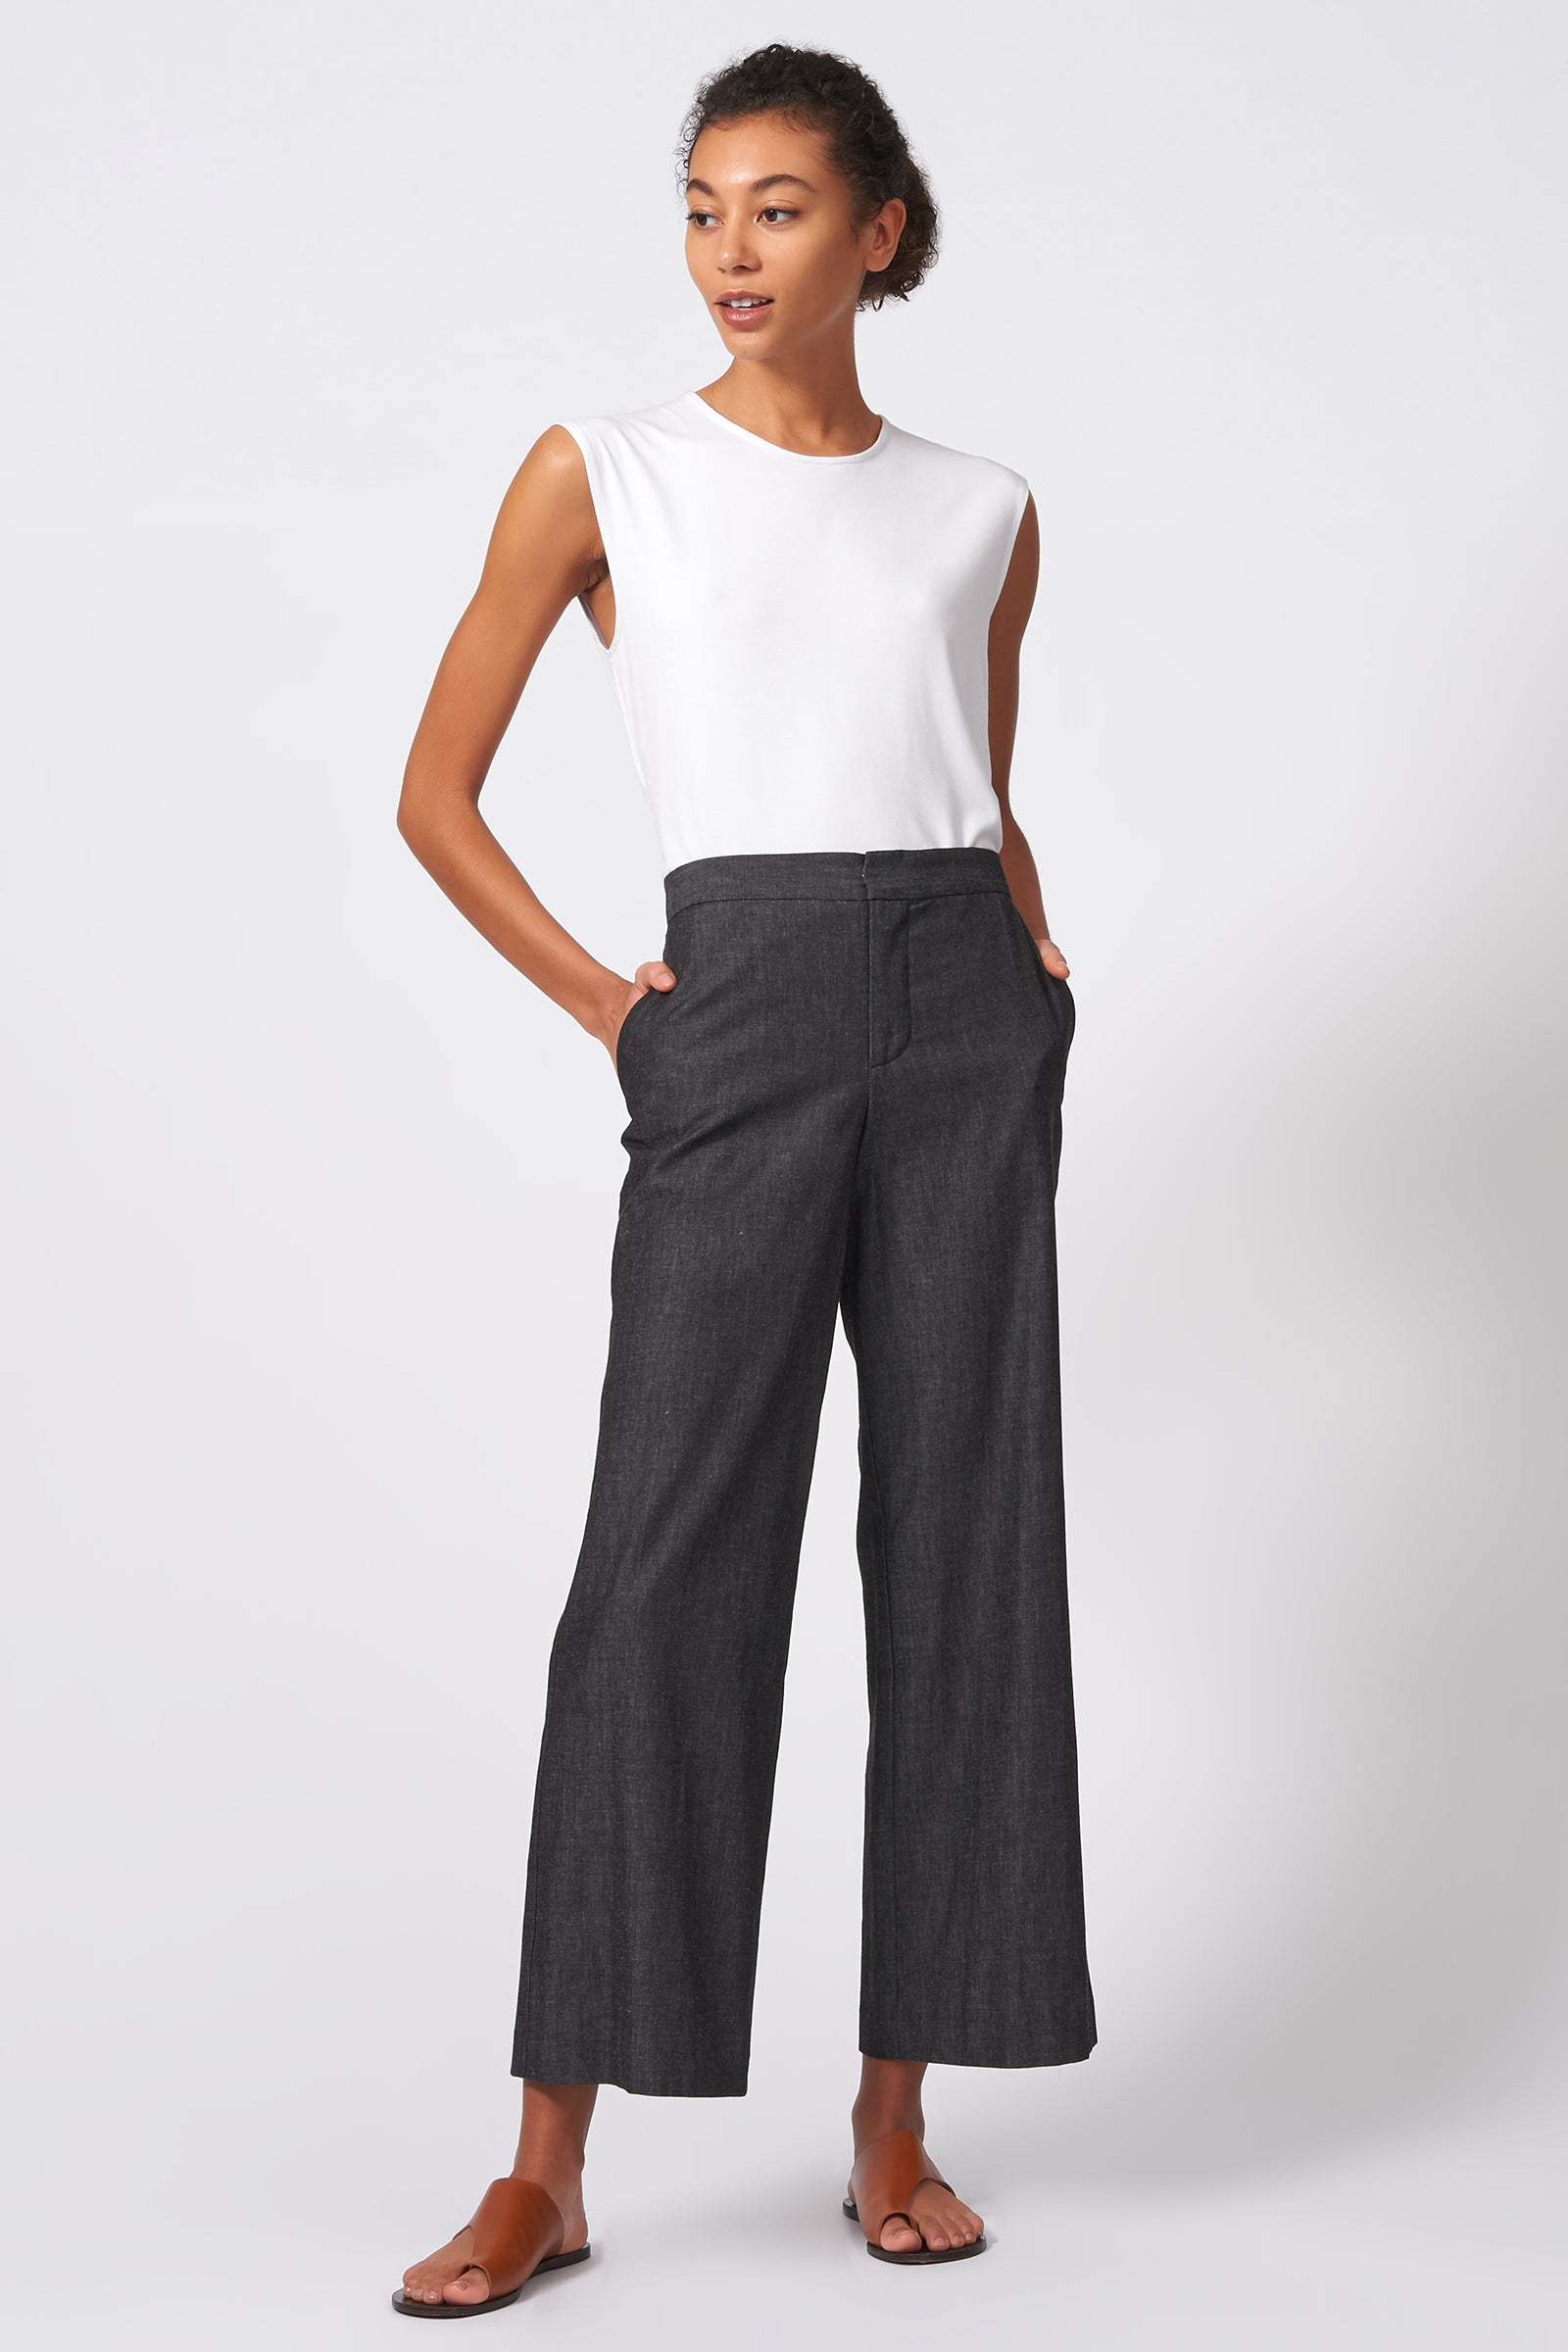 Kal Rieman Flat Front Trouser in Dark Denim on Model Full Front View